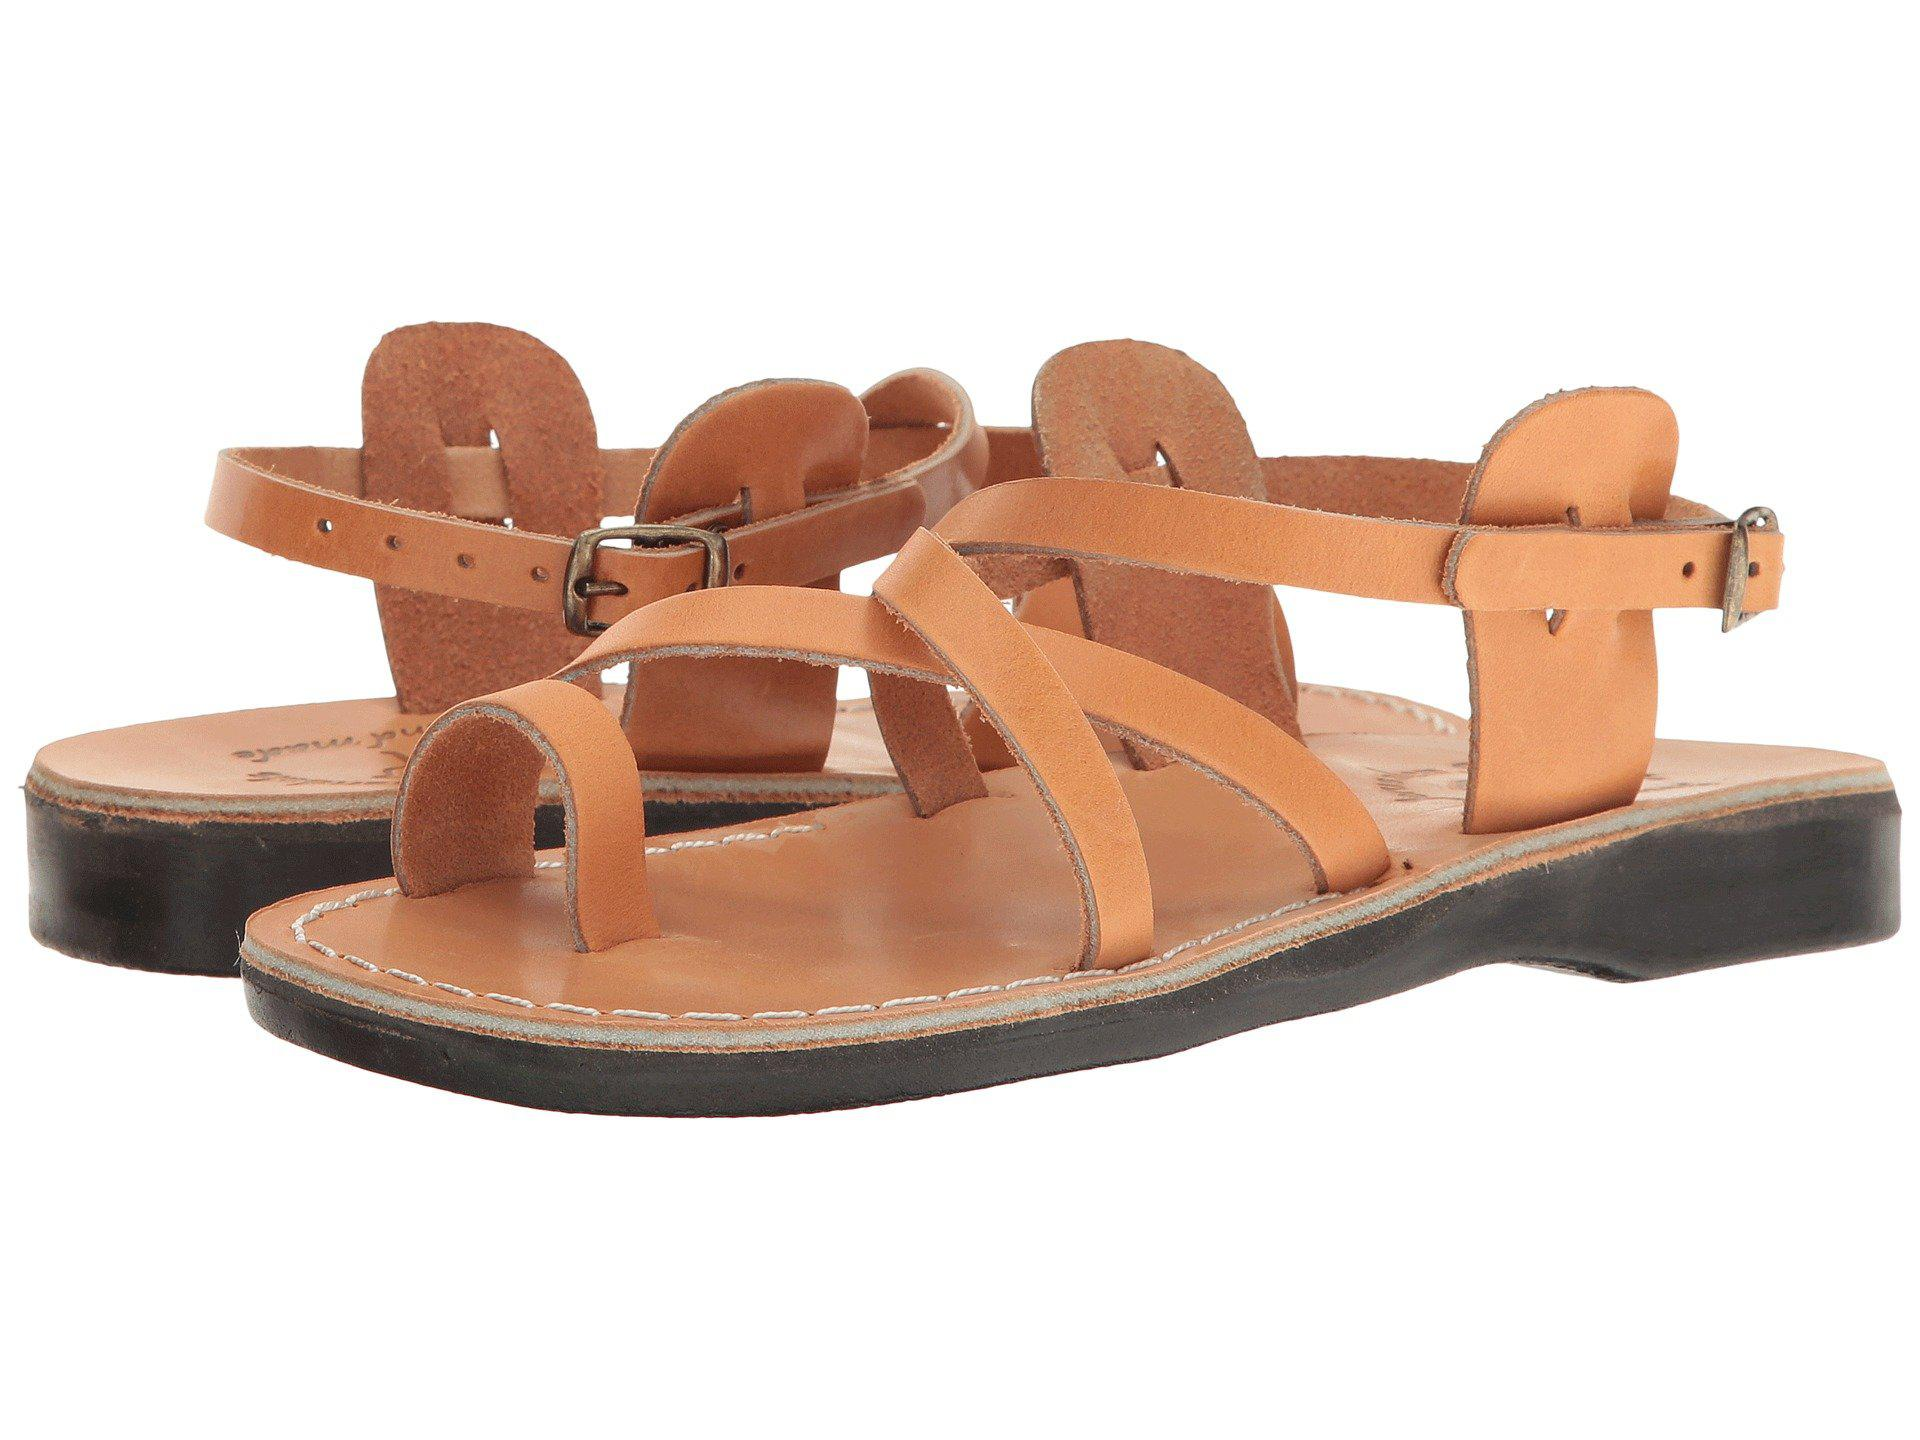 47489cf4792b Lyst - Jerusalem Sandals The Good Shepherd Buckle - Womens (honey ...